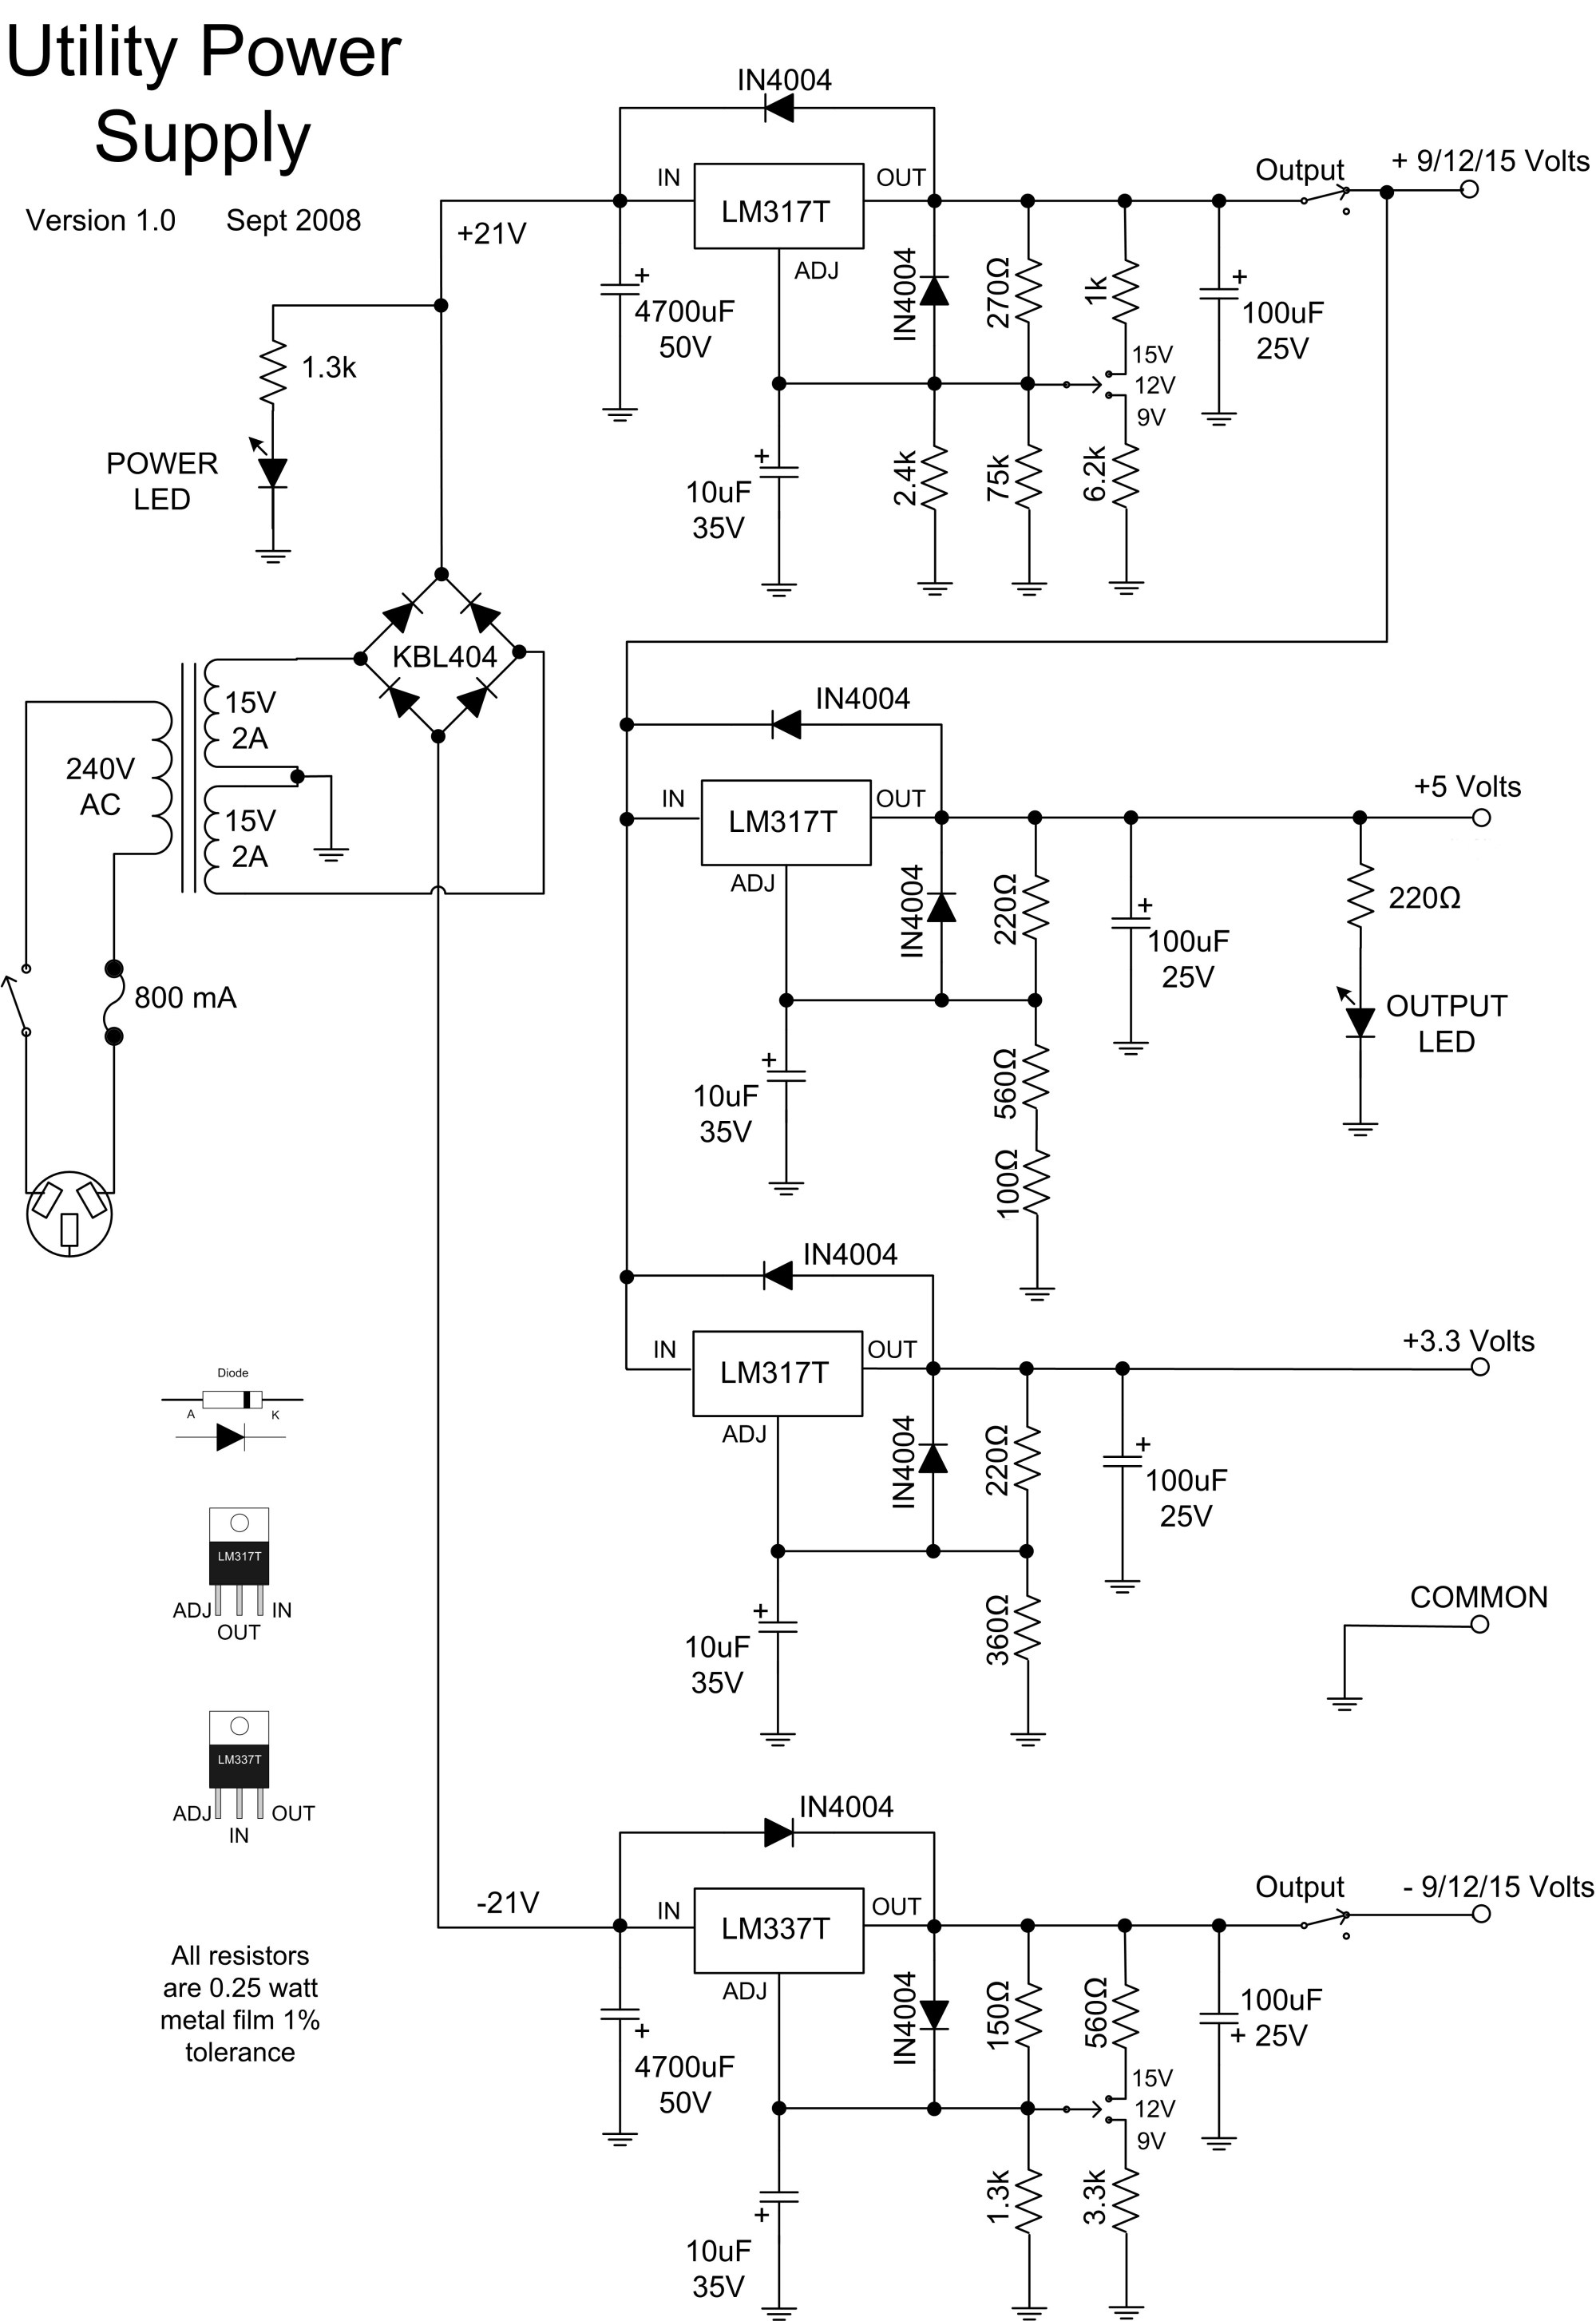 hight resolution of utility power supply v1 0 schematic download